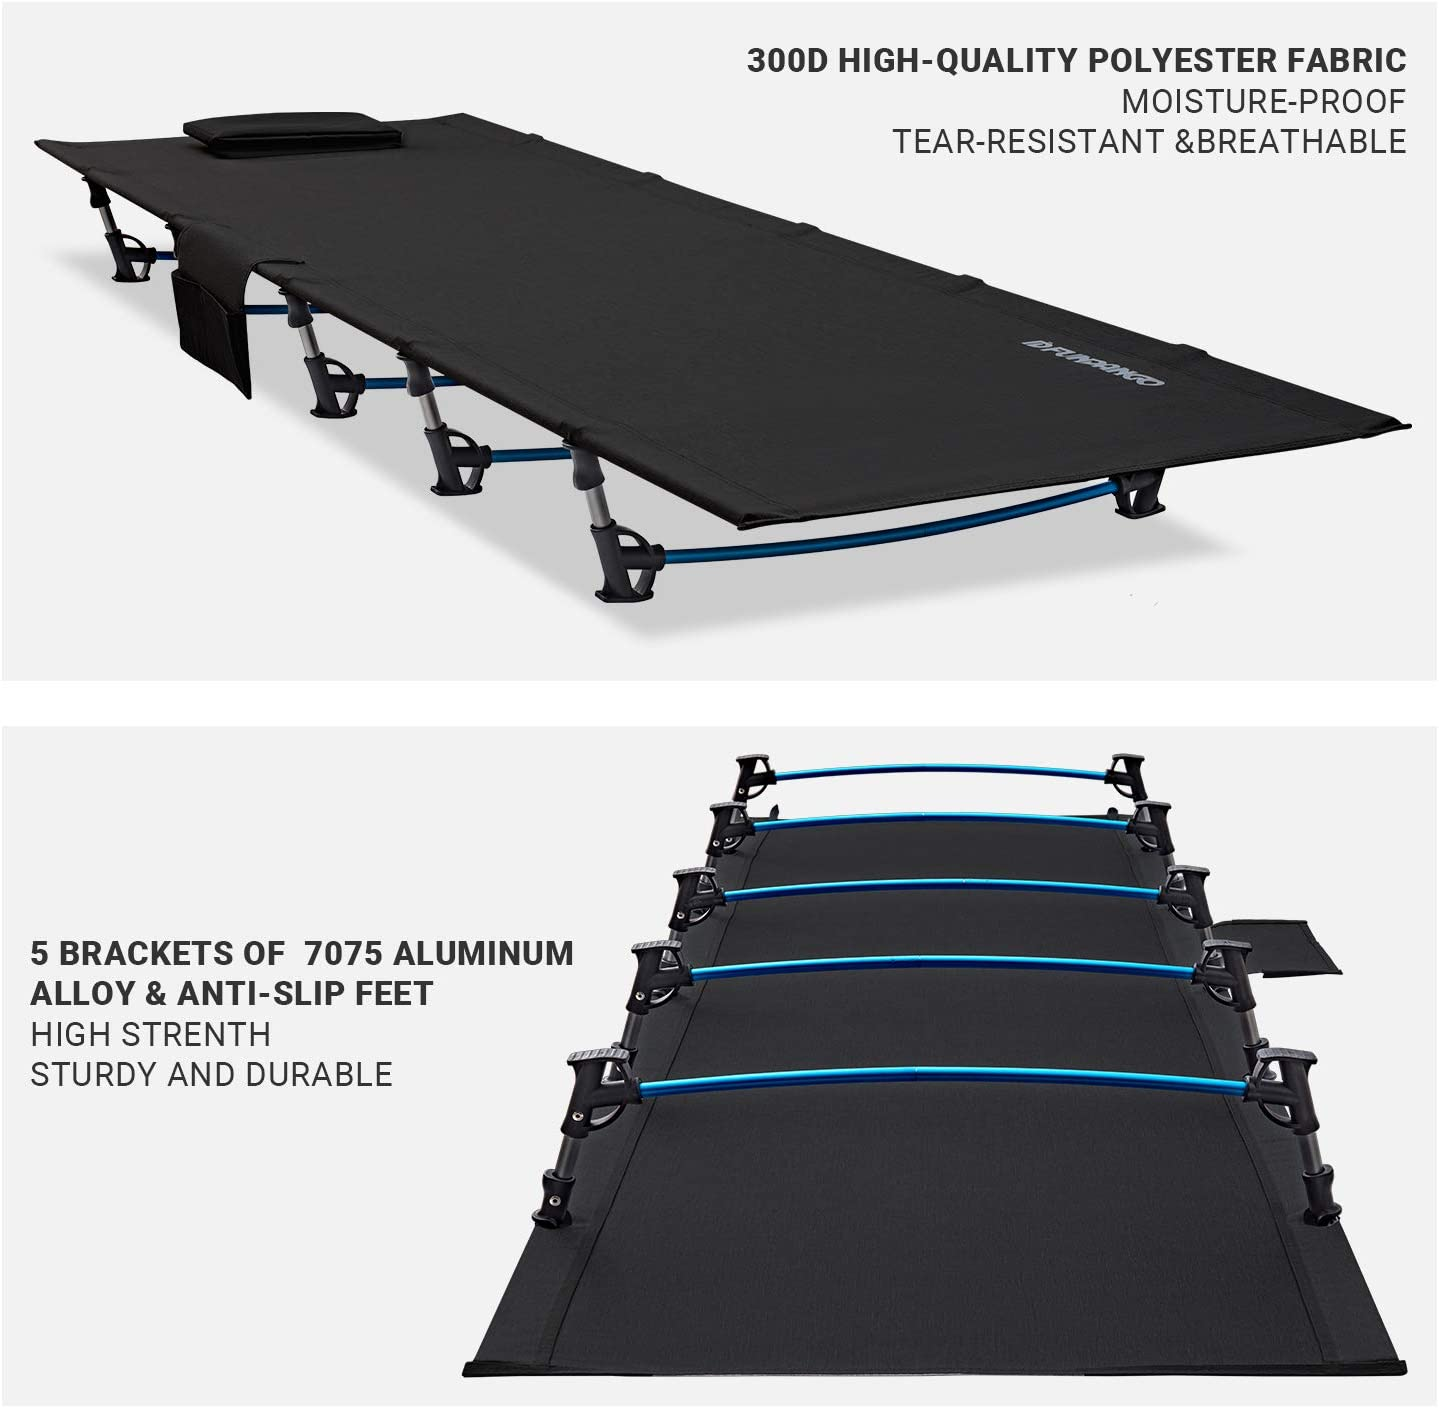 Travel Camping for Adult FUNDANGO Extra Long Ultralight Folding Compact Camping Cot Bed Outdoor Office Nap 78.7 x 27.1 x 6.7/'/' // 5lbs Backpacking Hiking Support 265lbs Side Pocket Indoor